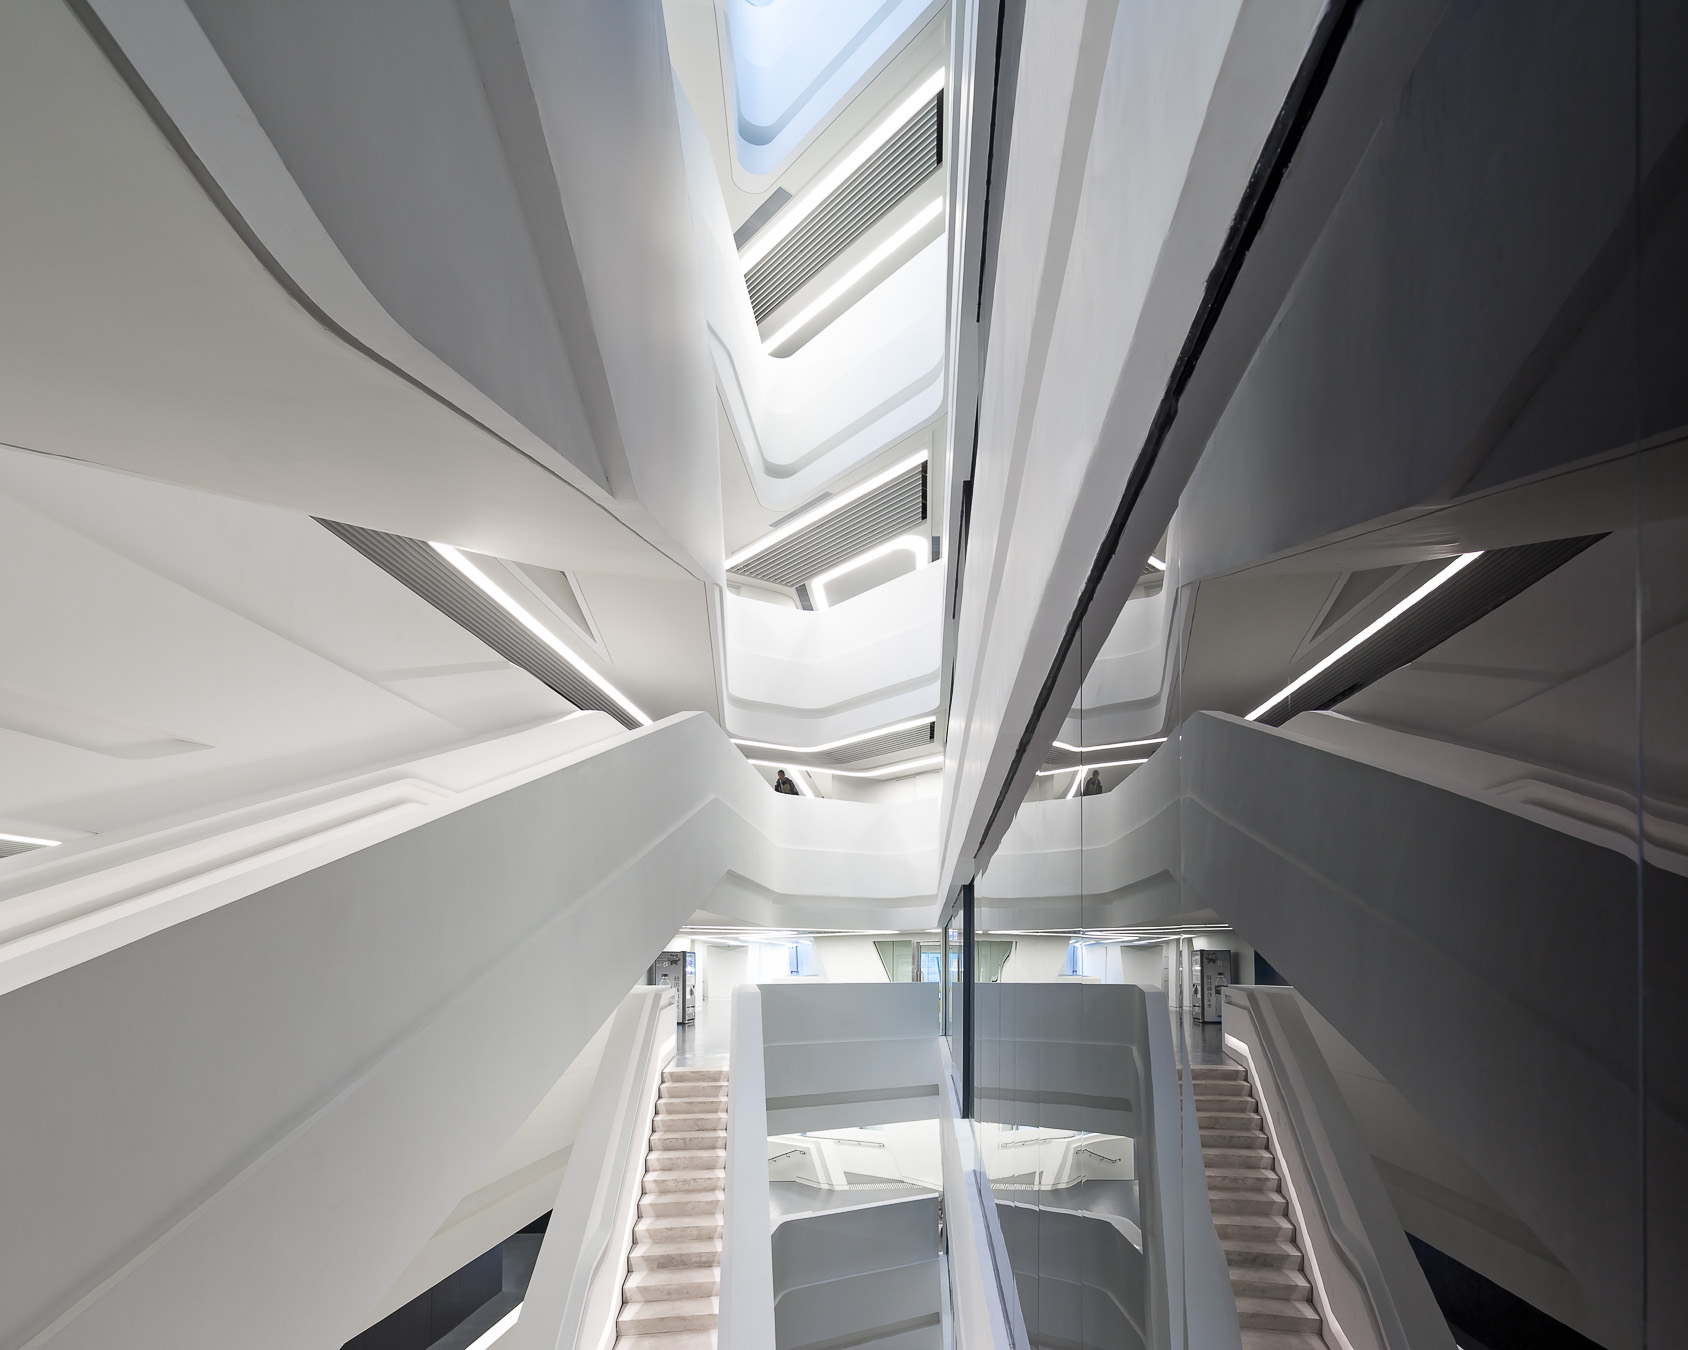 Symmetrical Atrium reflection at the innovation_tower_by_zaha_hadid_architects-56.jpg